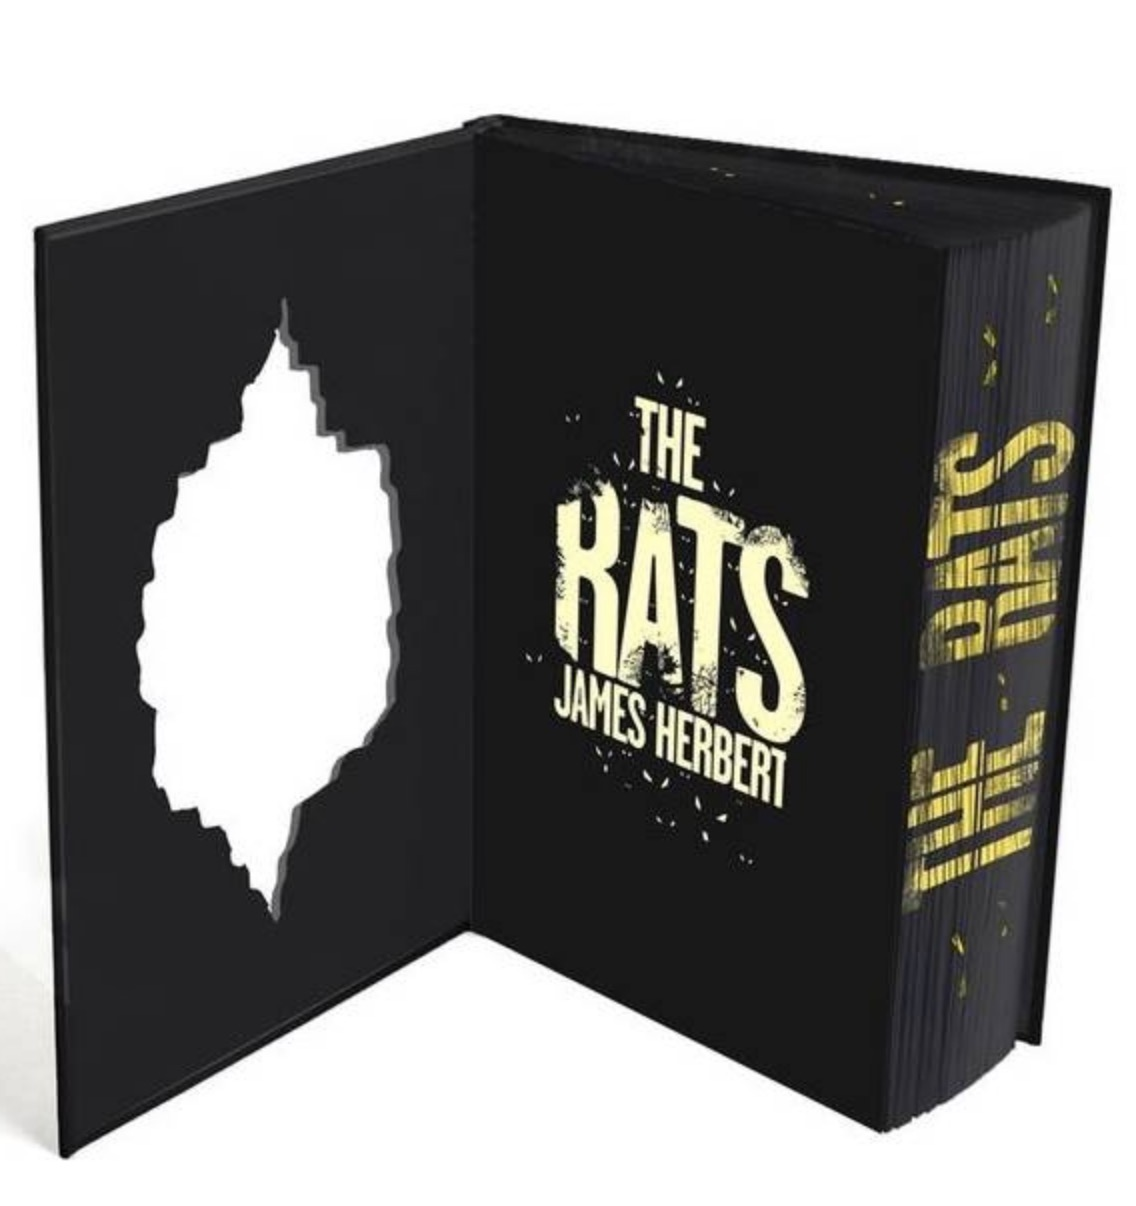 James Herbert The Rats sprayed edges